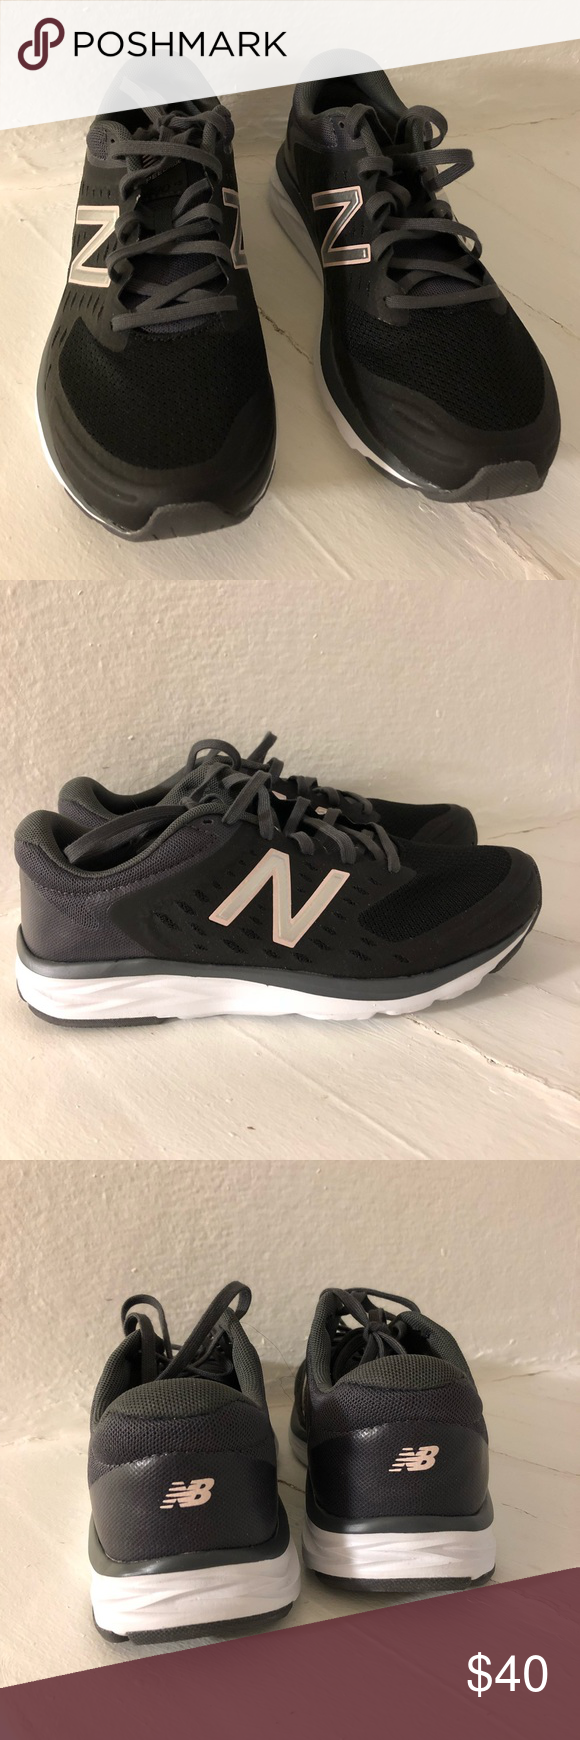 half off 1e923 3a258 Brand New* New Balance 490v5 Running Shoes Never worn, as ...